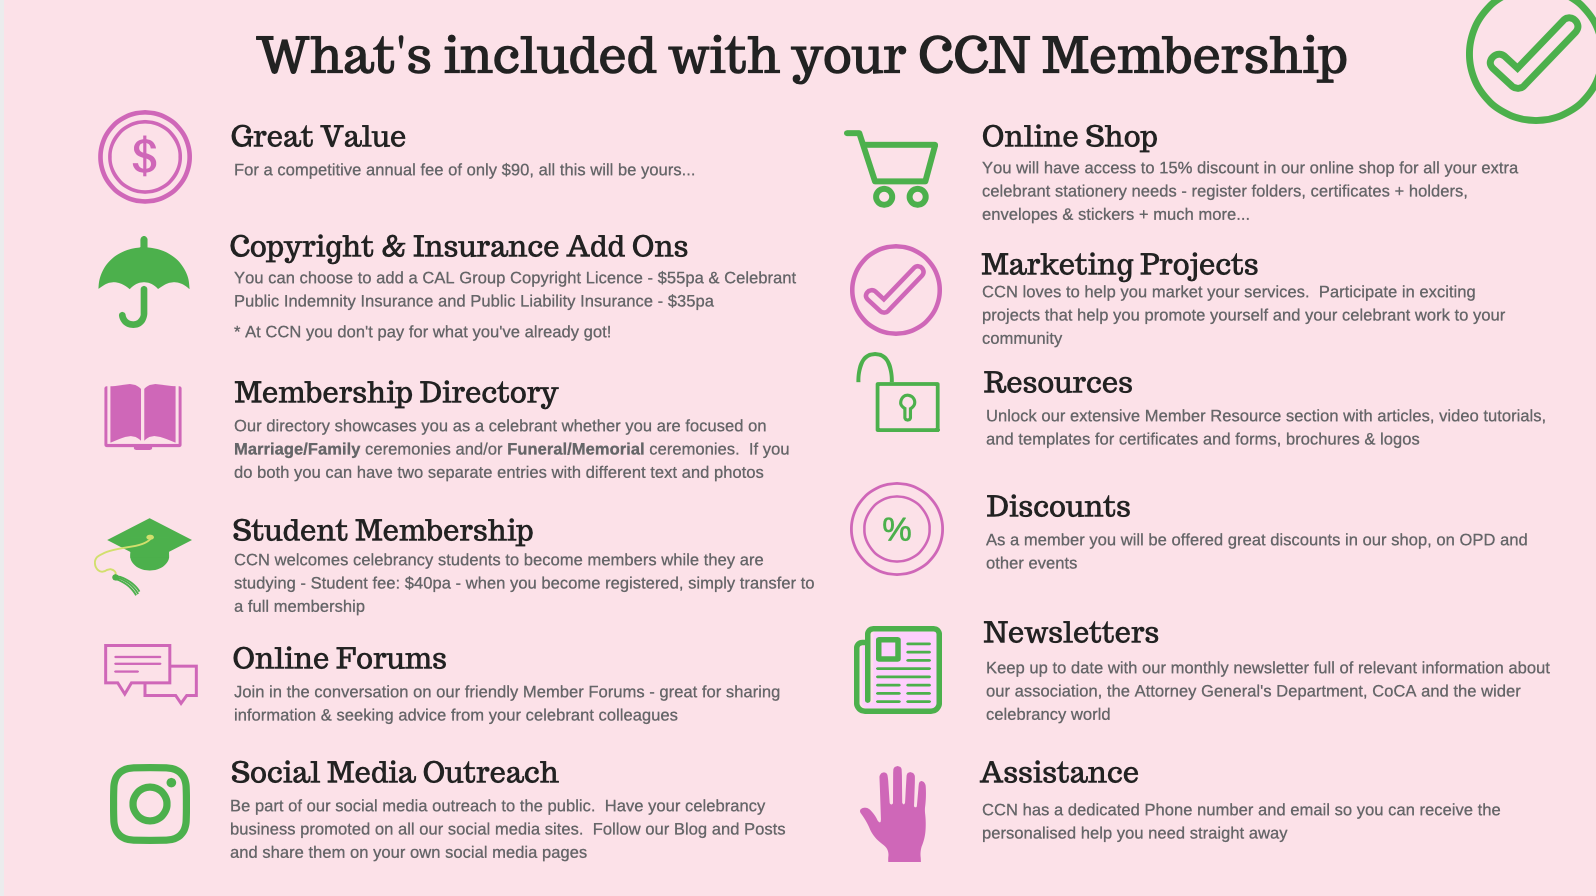 CCN Benefits 14.05.19